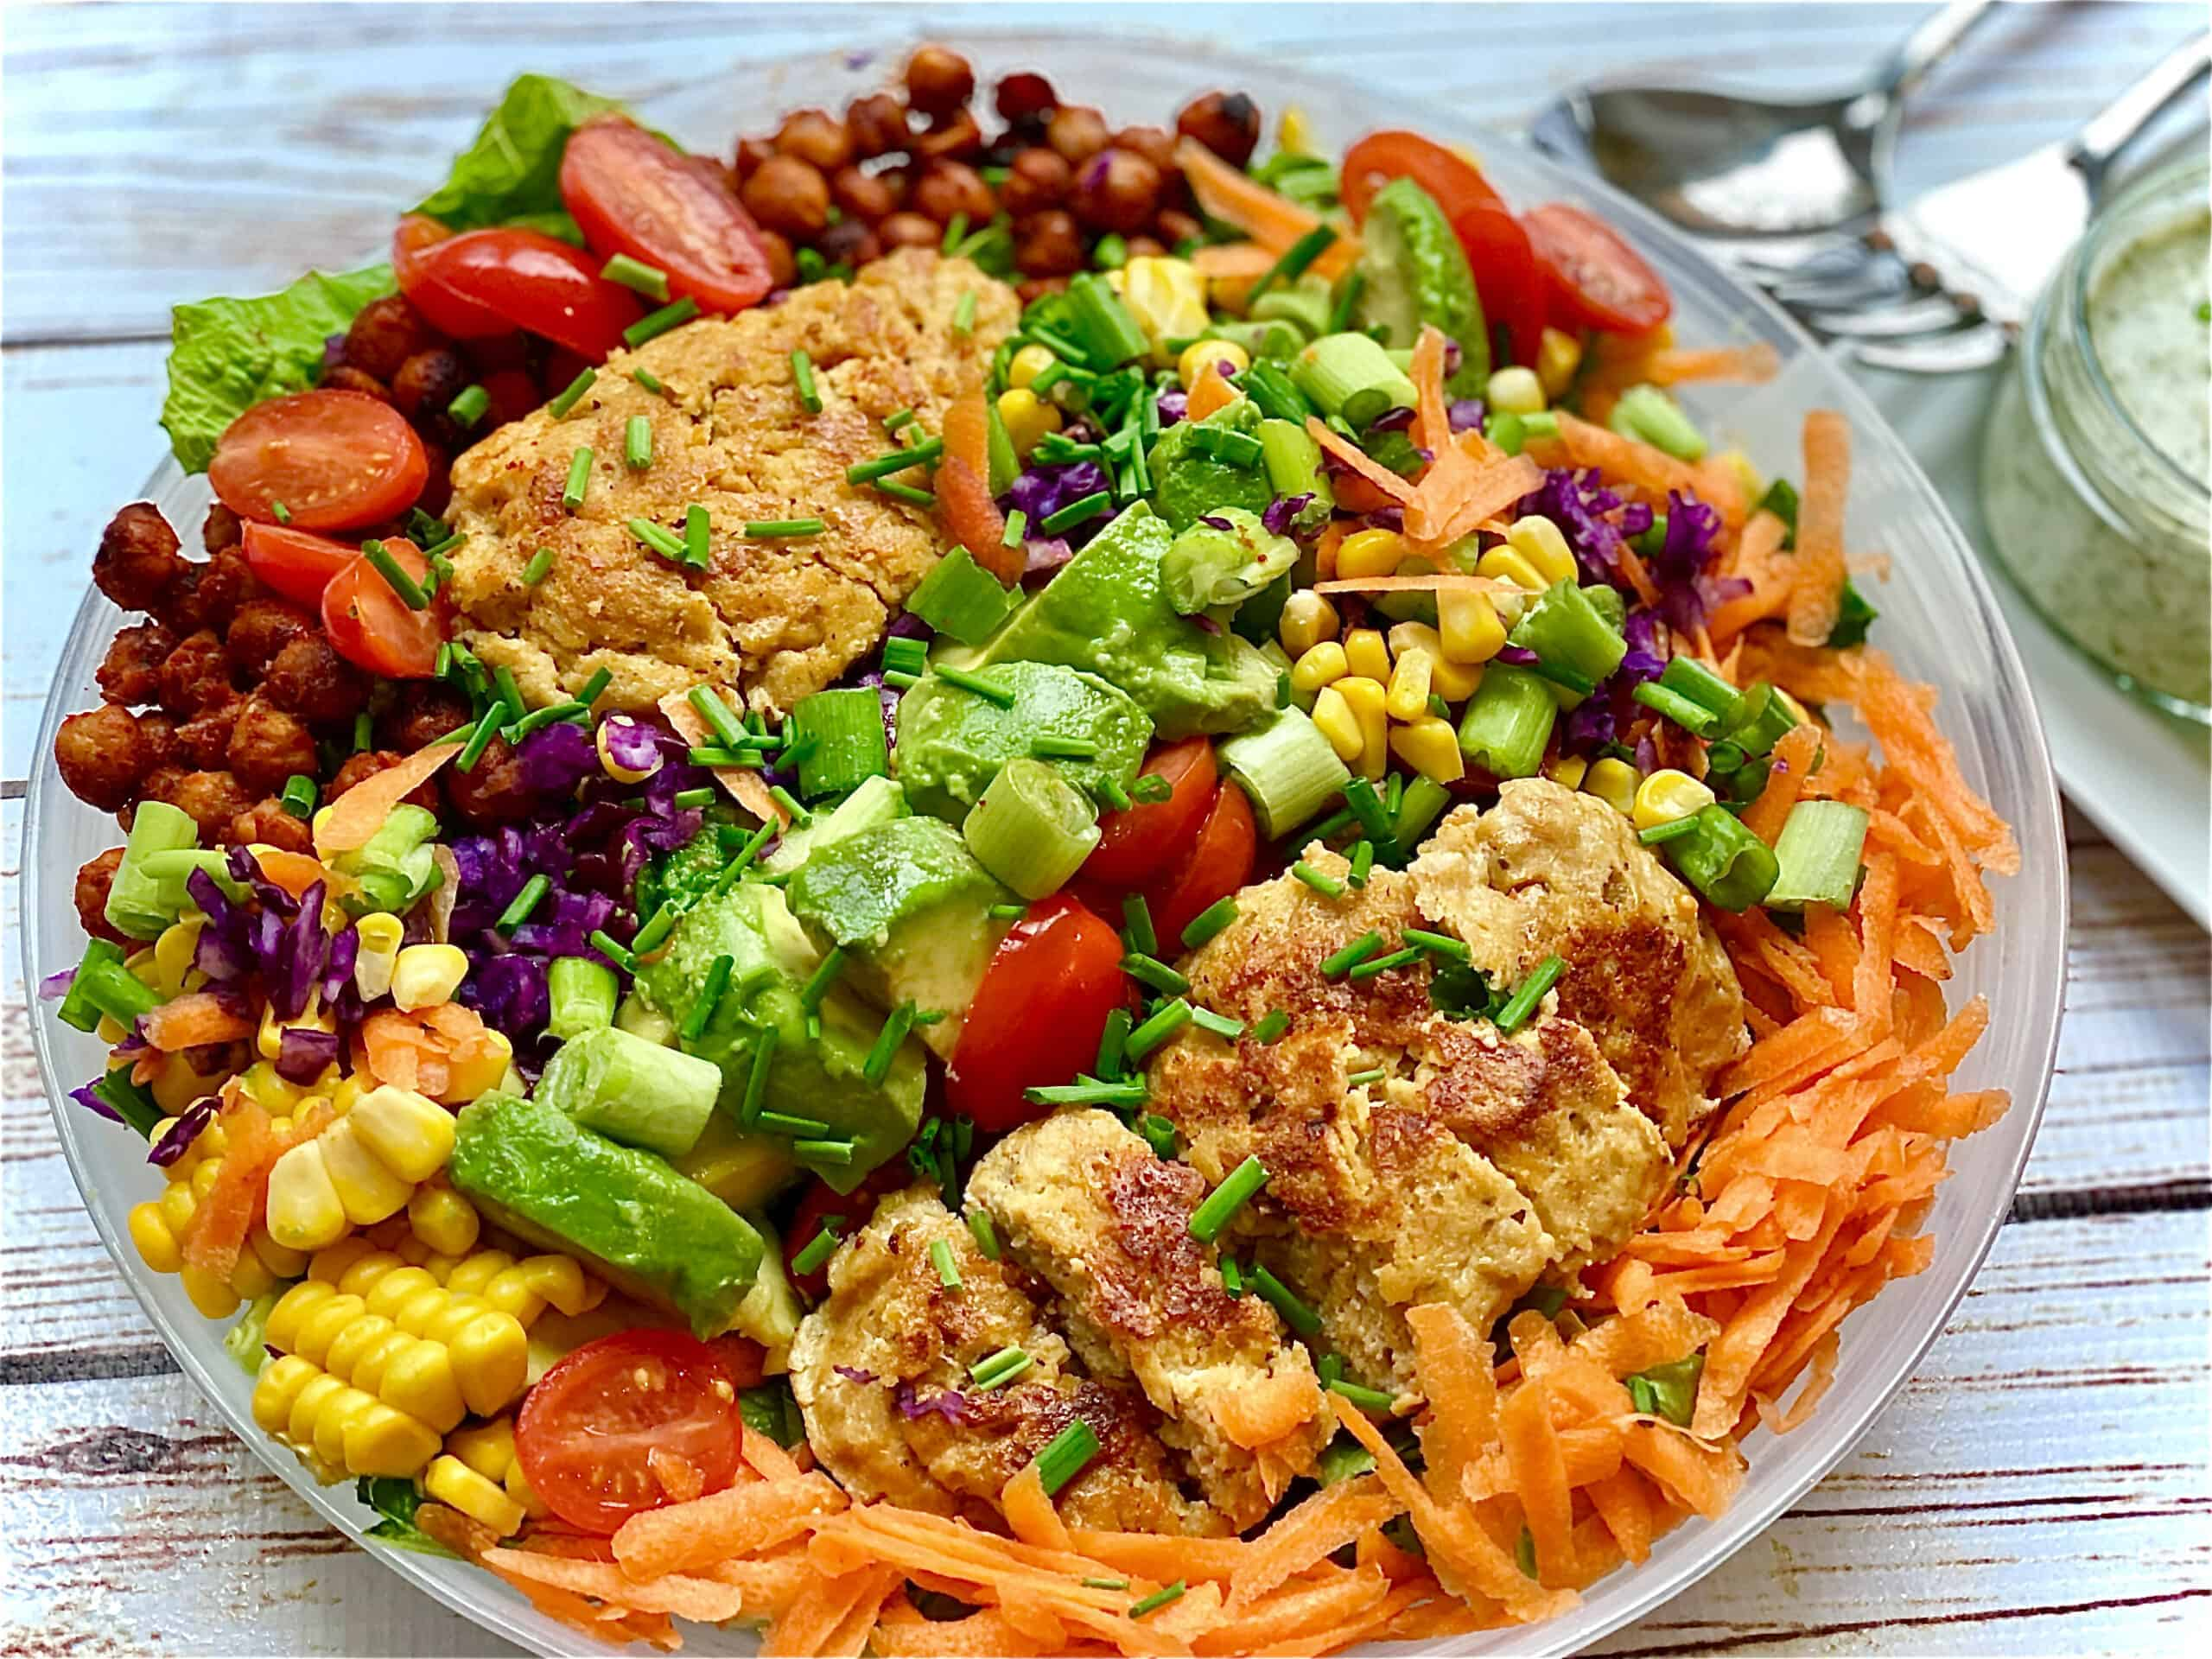 Vegan Cobb Salad Recipe